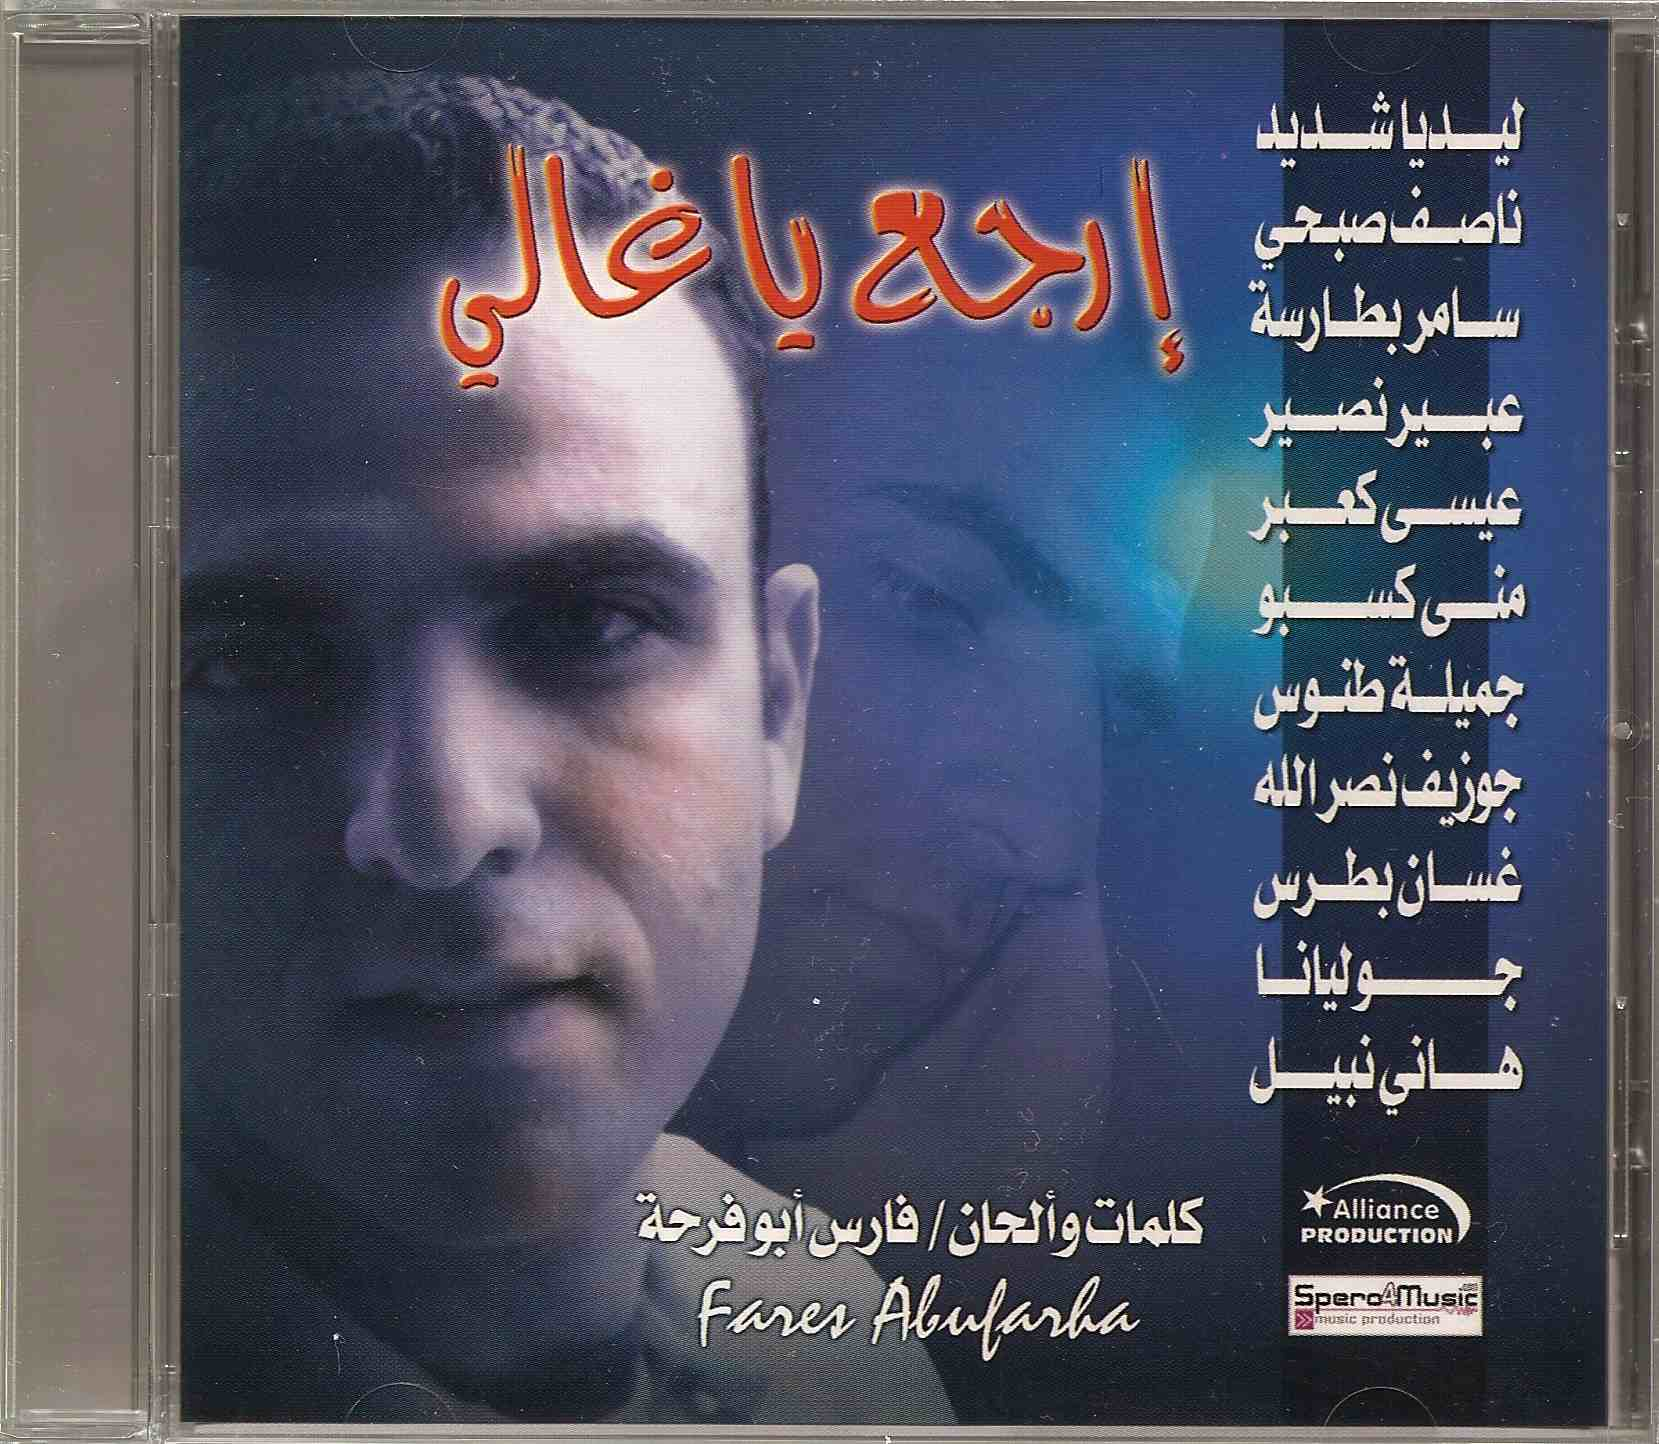 Return Dear precious Arabic music CD by Fares Abufarha